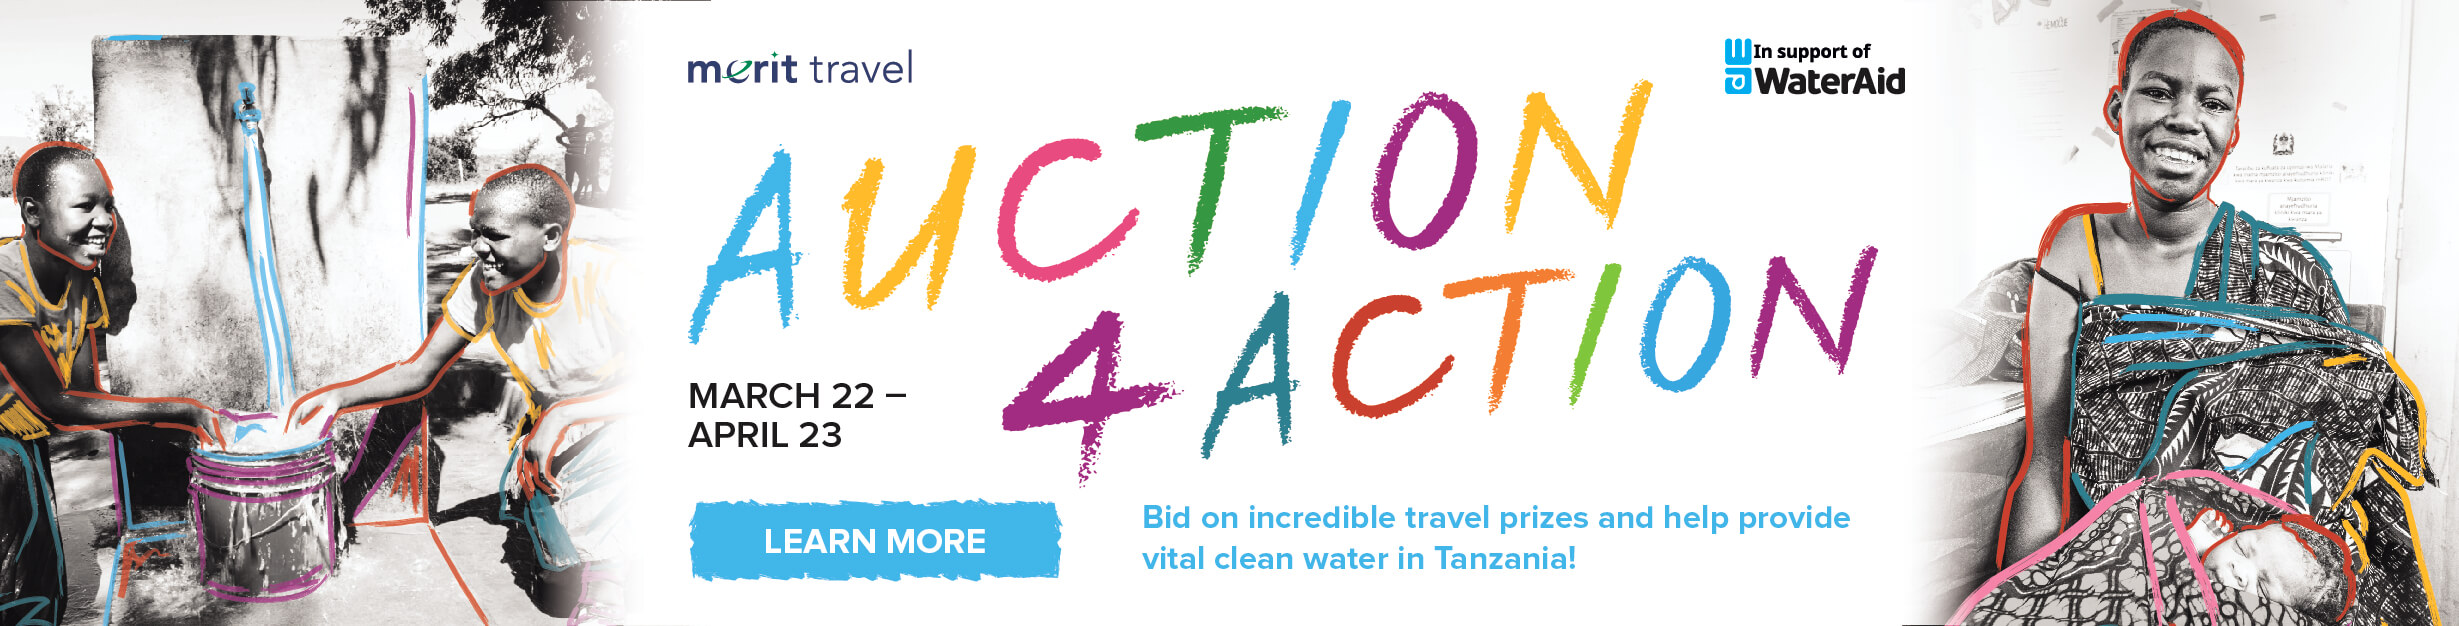 WaterAid Auction